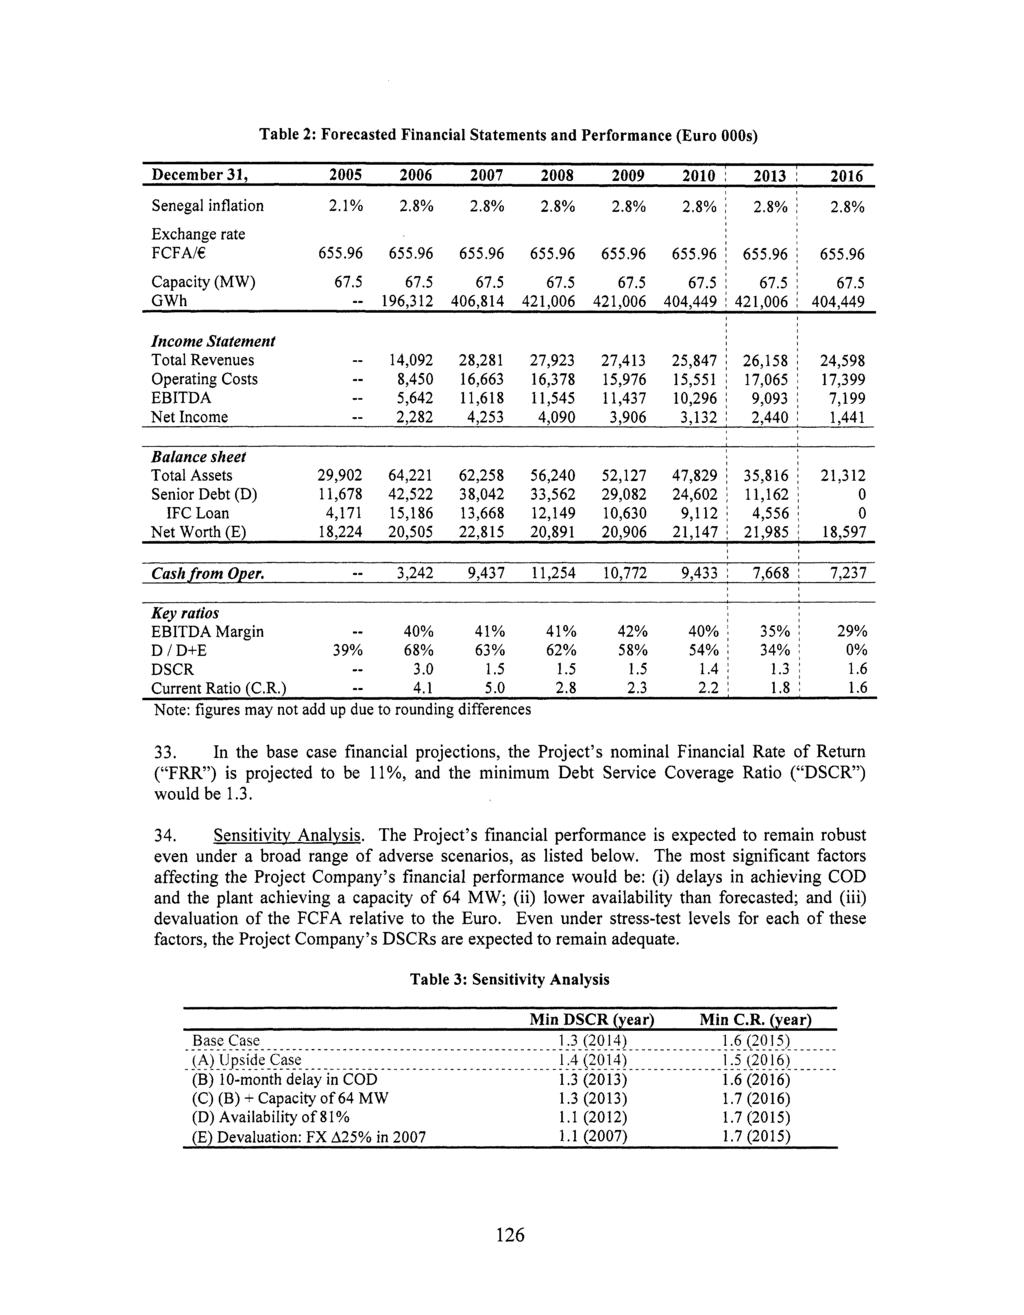 2013 4,556 2016 Table 2: Forecasted Financial Statements and Performance (Euro 000s) December 31, 2005 2006 2007 2008 2009 2010 ~ ~ Senegal inflation 2.1% 2.8% 2.8% 2.8% 2.8% 2.8% j 2.8% i 2.